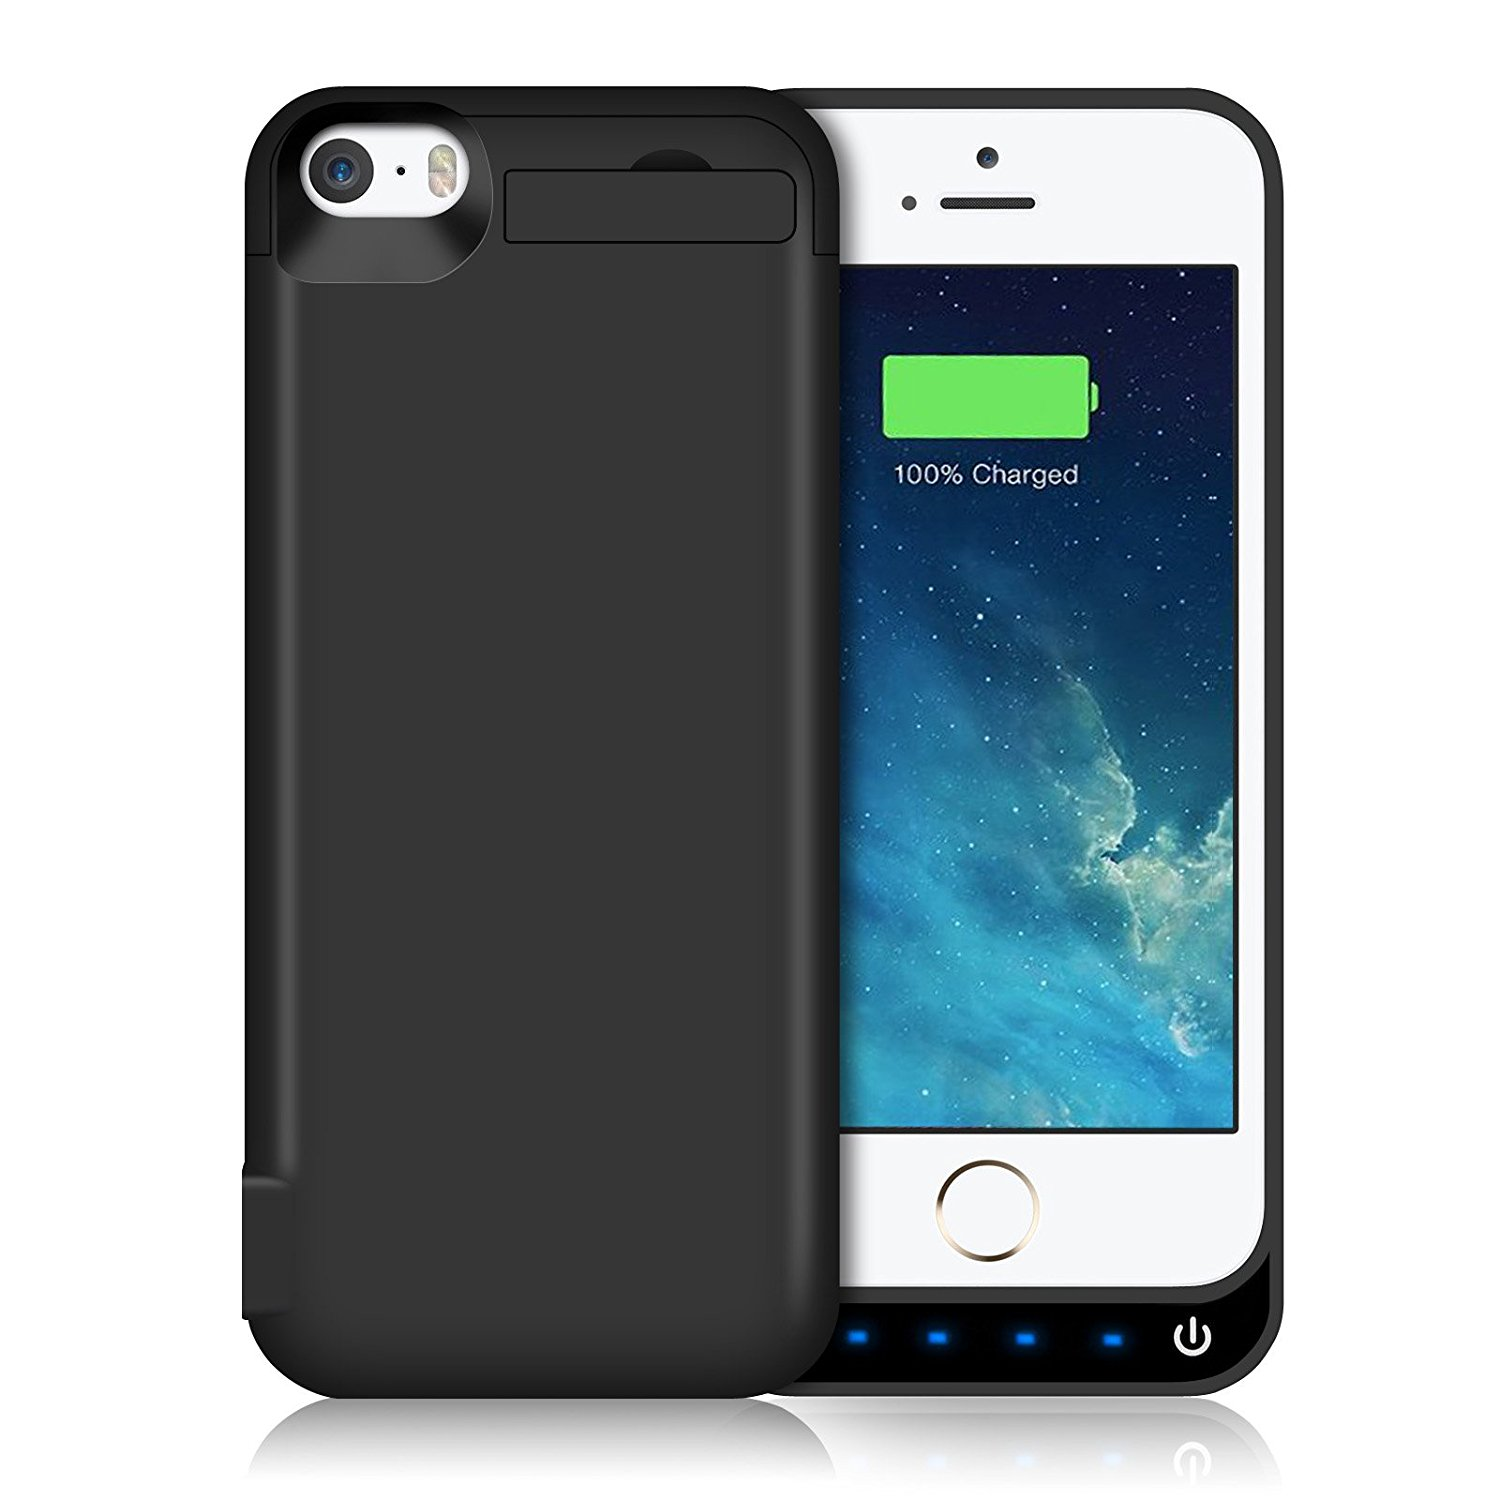 iPhone 5S/5SE/5C/5 Battery Case Backup Charger Case Protection Cover 4600mAh Extended Battery Built in USB Power Bank & Pop-out Kickstand Charging Case(Up to 2.65X Extra Battery Life) Black